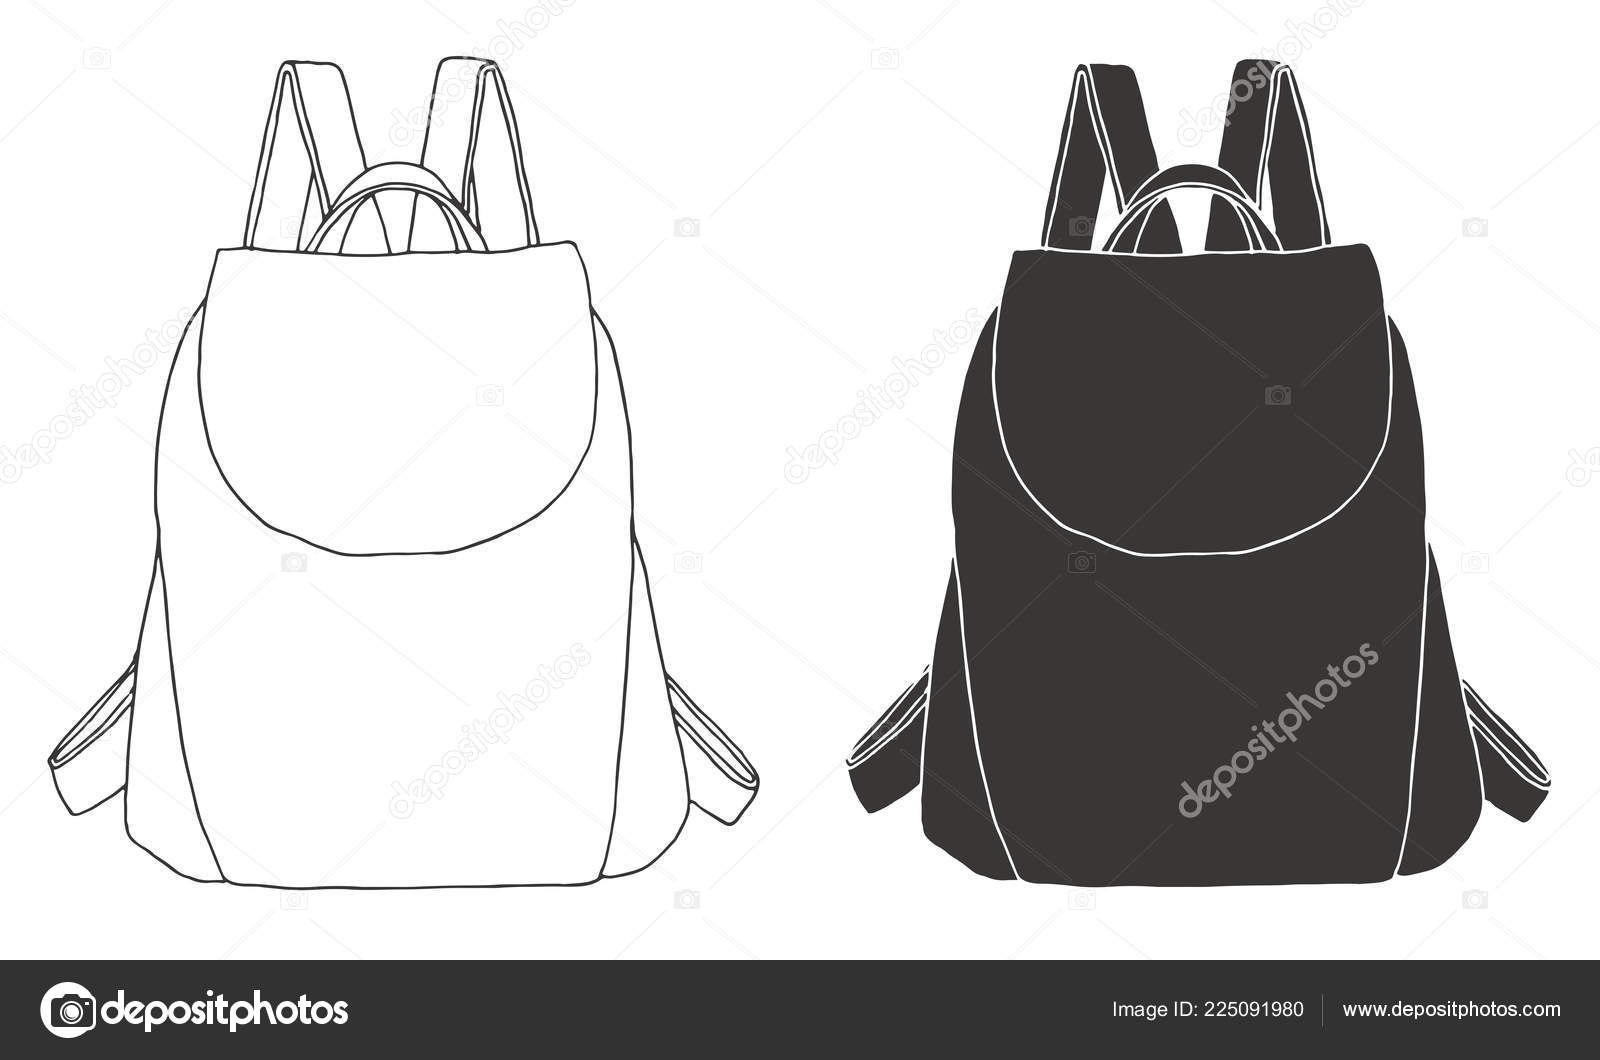 fcec71aad0f Sketch Rucksack Backpack Isolated White Background Vector Illustration  Sketch Style — Stock Vector